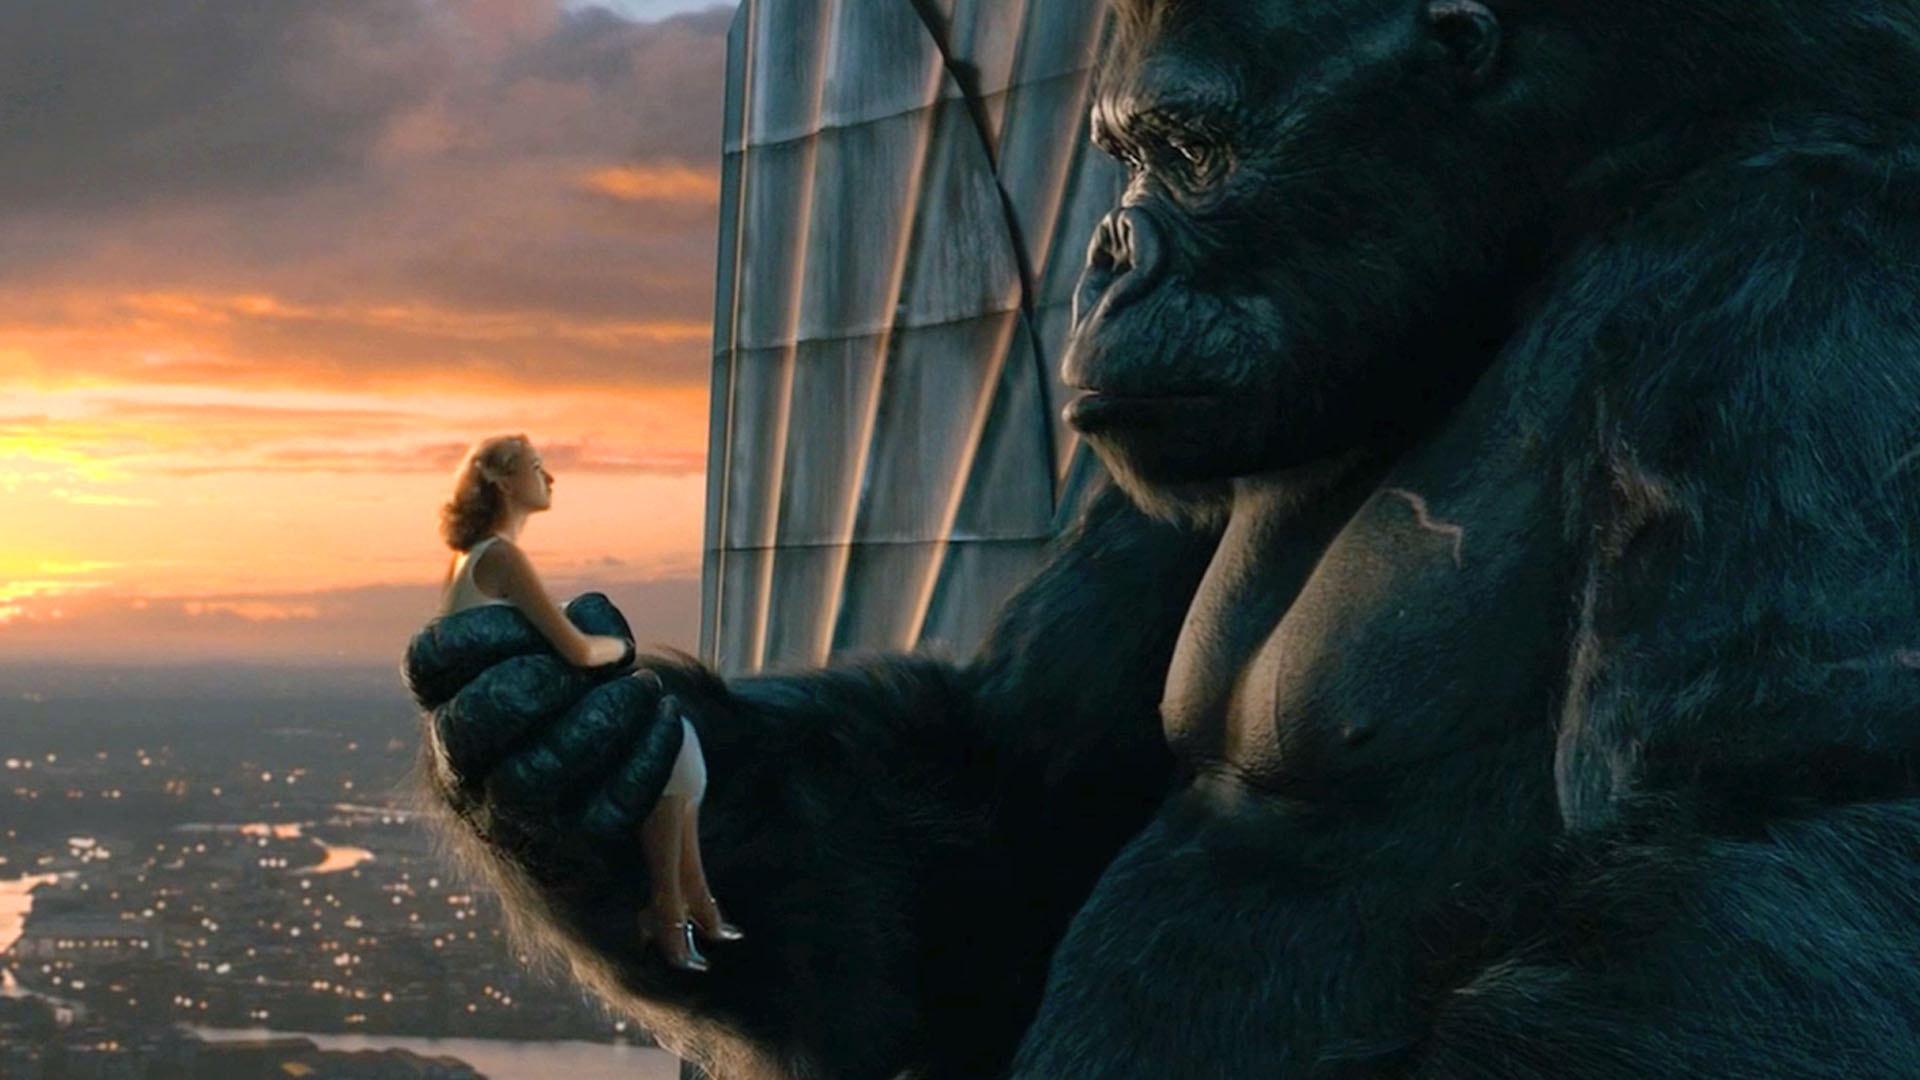 King Kong Empire State Building With Girl Images & Pictures - Becuo King Kong Empire State Building With Girl